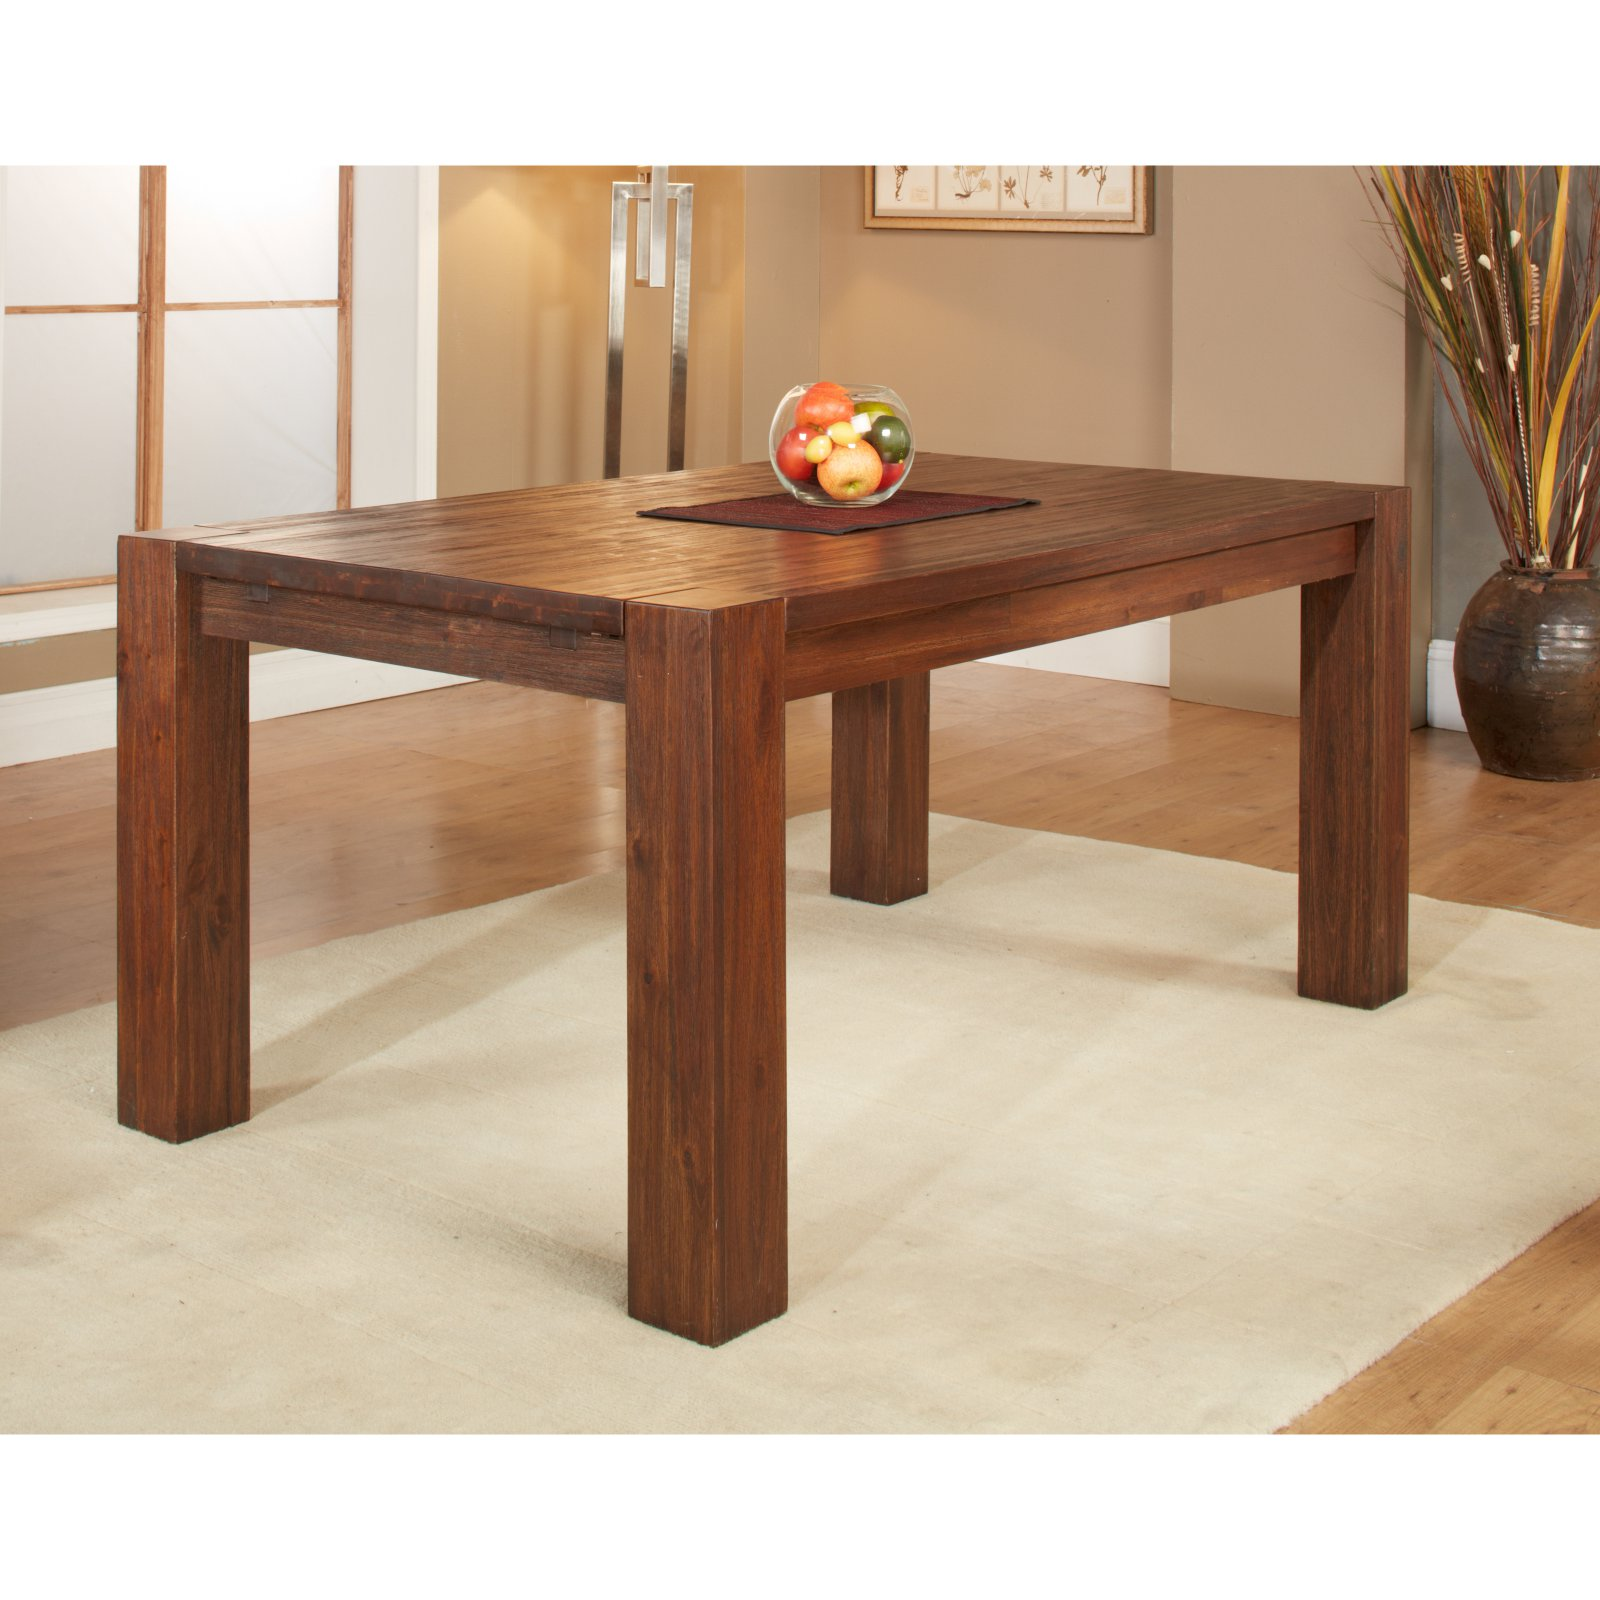 Modus Meadow Solid Wood Extending Dining Table Brick Brown by Modus Furniture